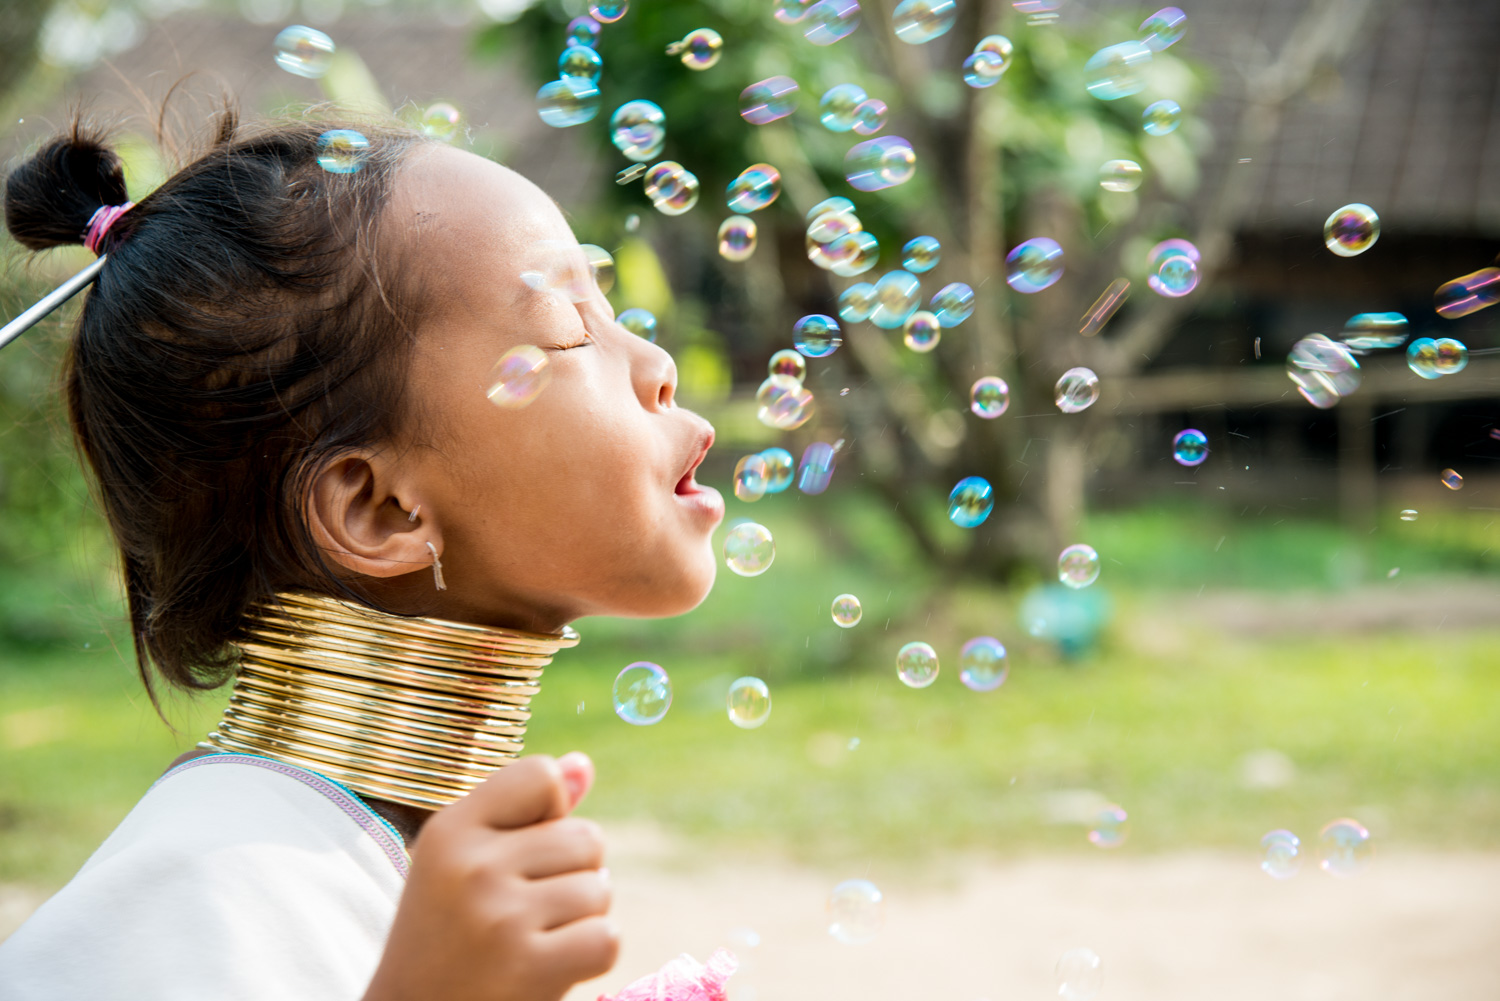 Kayan girl playing with bubbles. Photo by Kevin Landwer-Johan (copyright) - How to Avoid Distracting Backgrounds in Street Photography